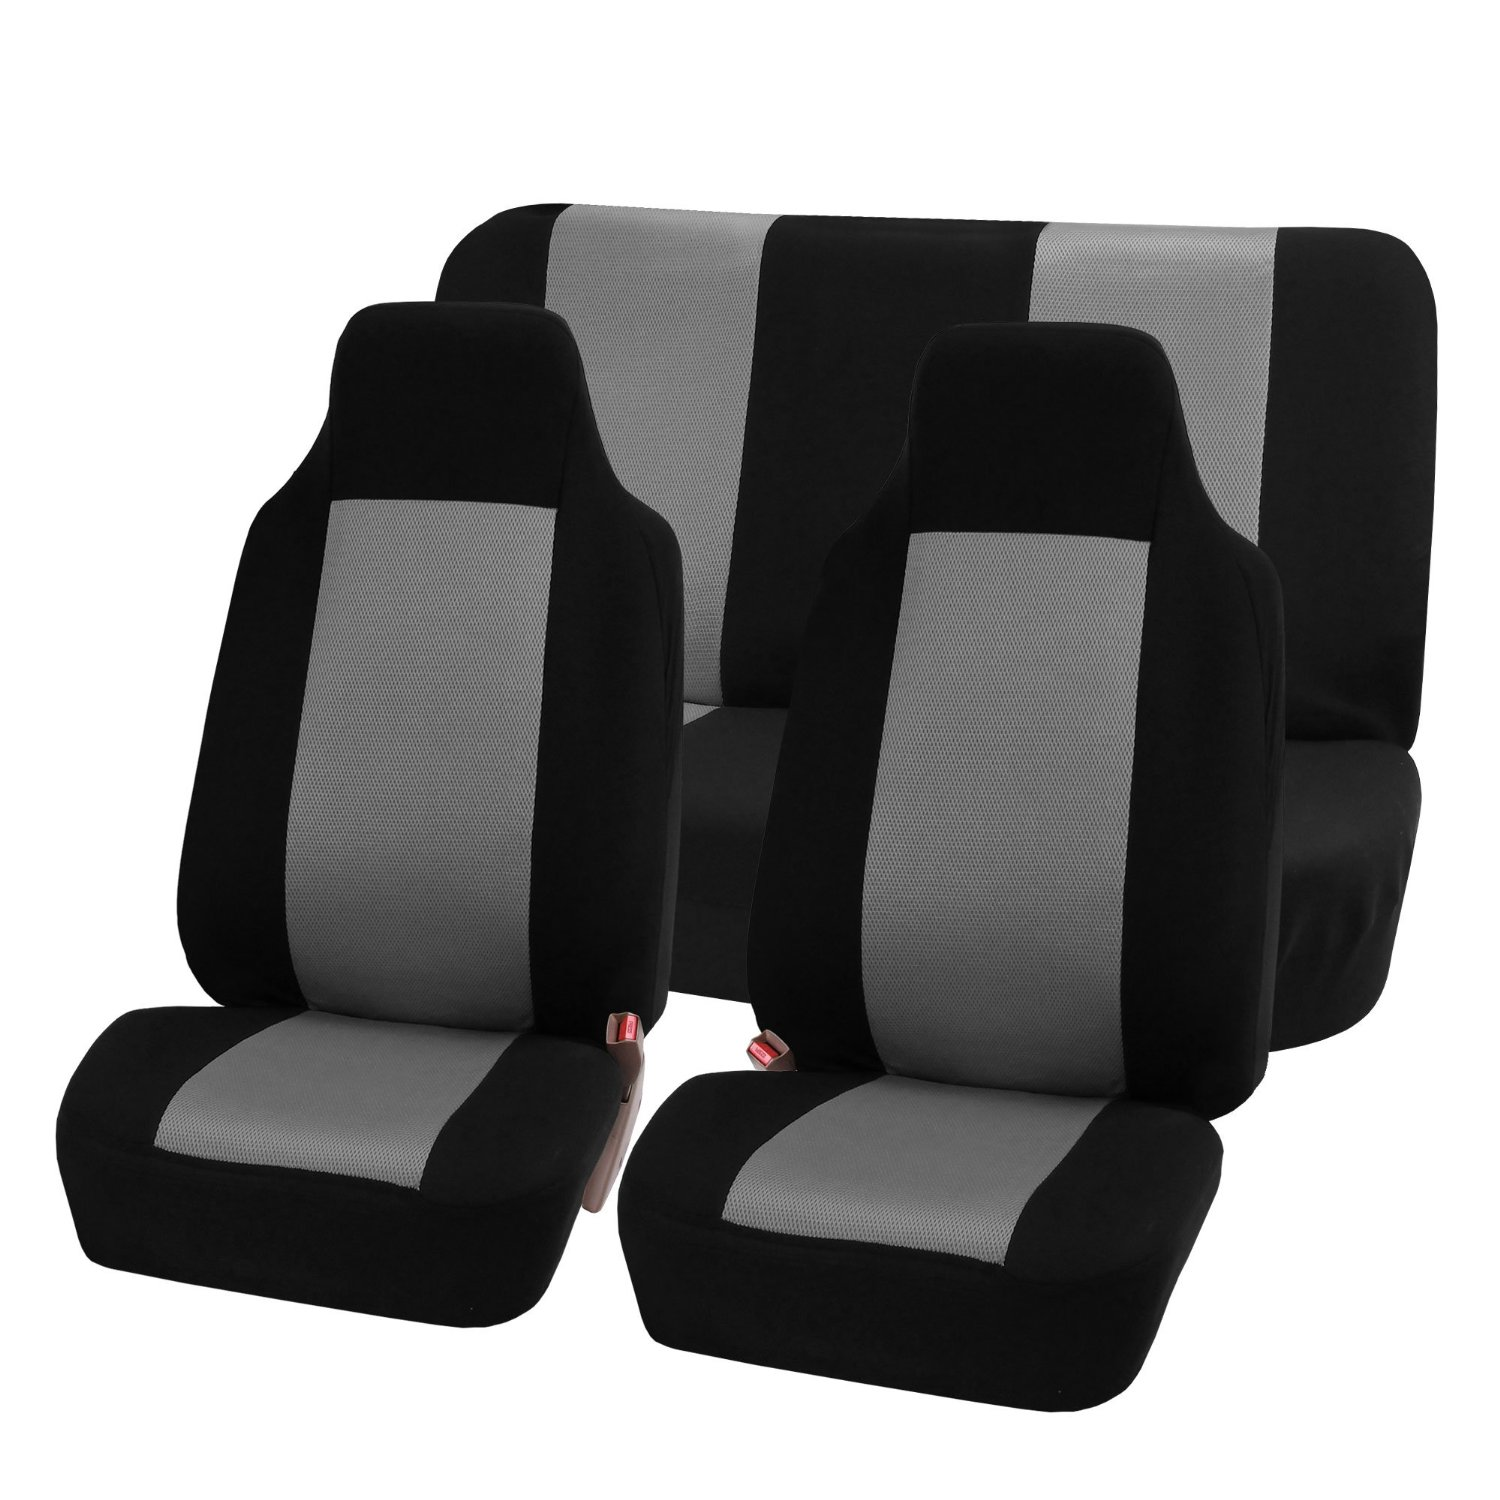 FH Group Flat Cloth Seat Covers - Full Set